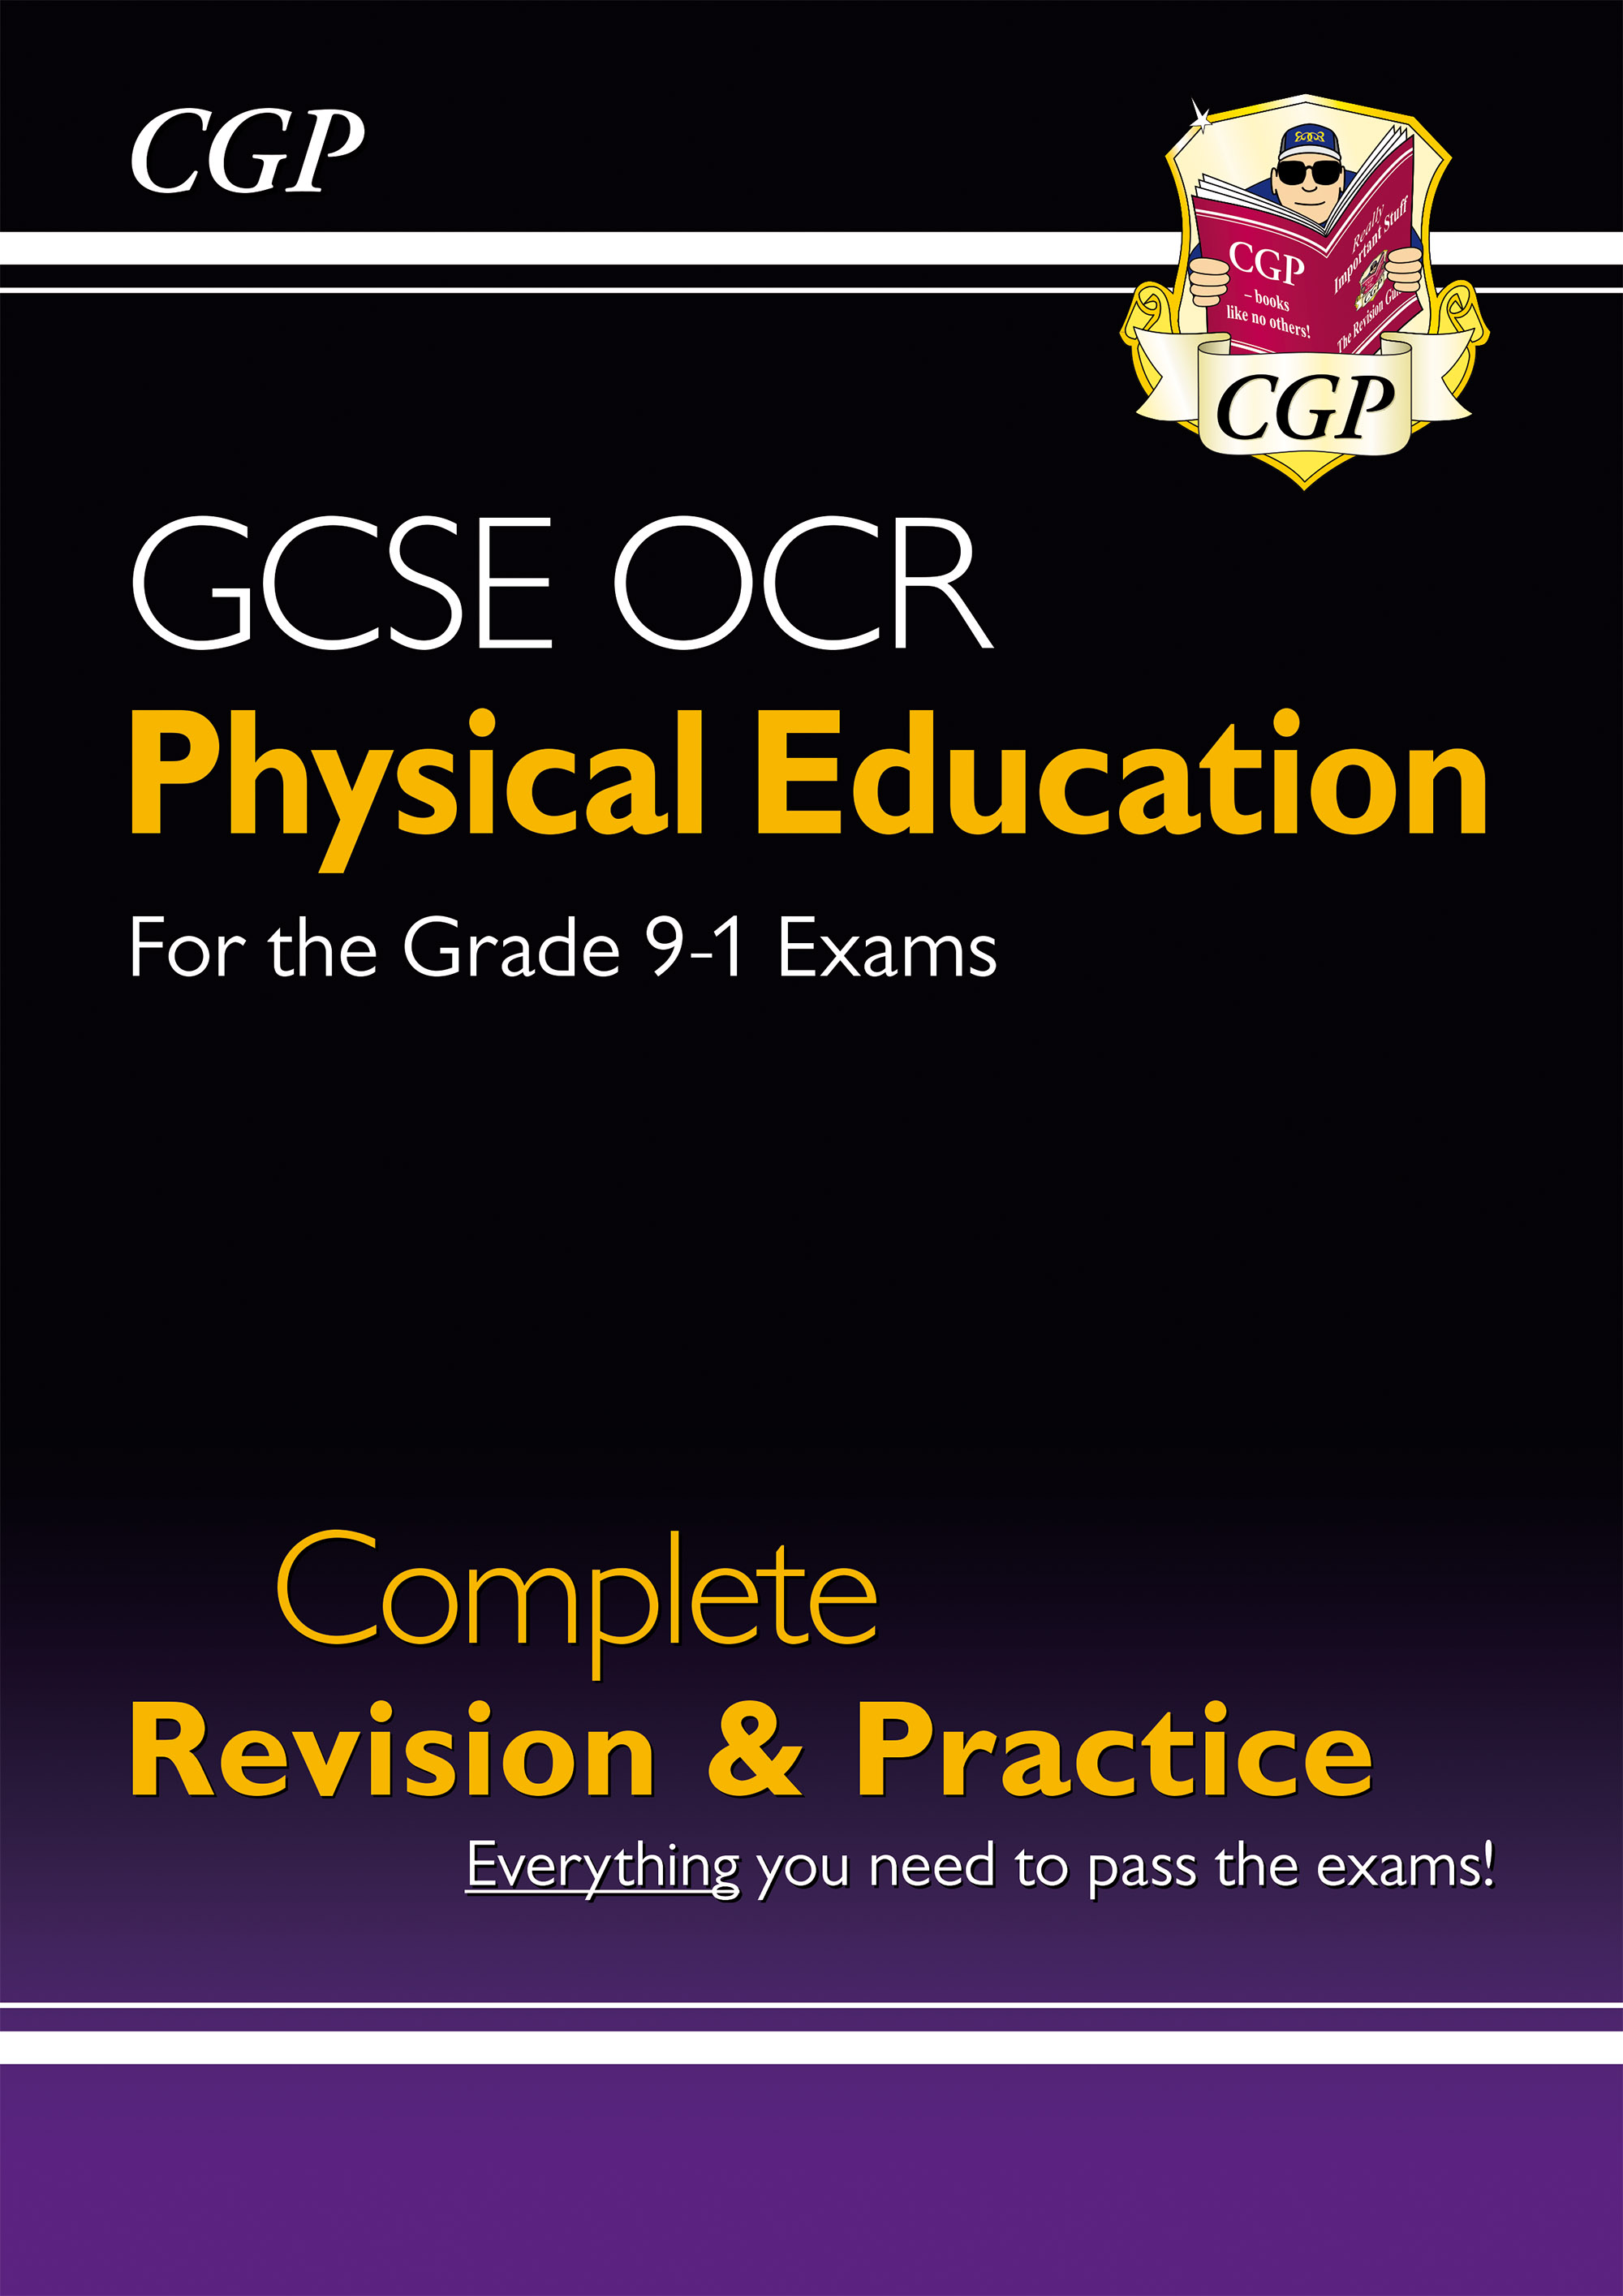 JRS41D - New Grade 9-1 GCSE Physical Education OCR Complete Revision & Practice Online Edition